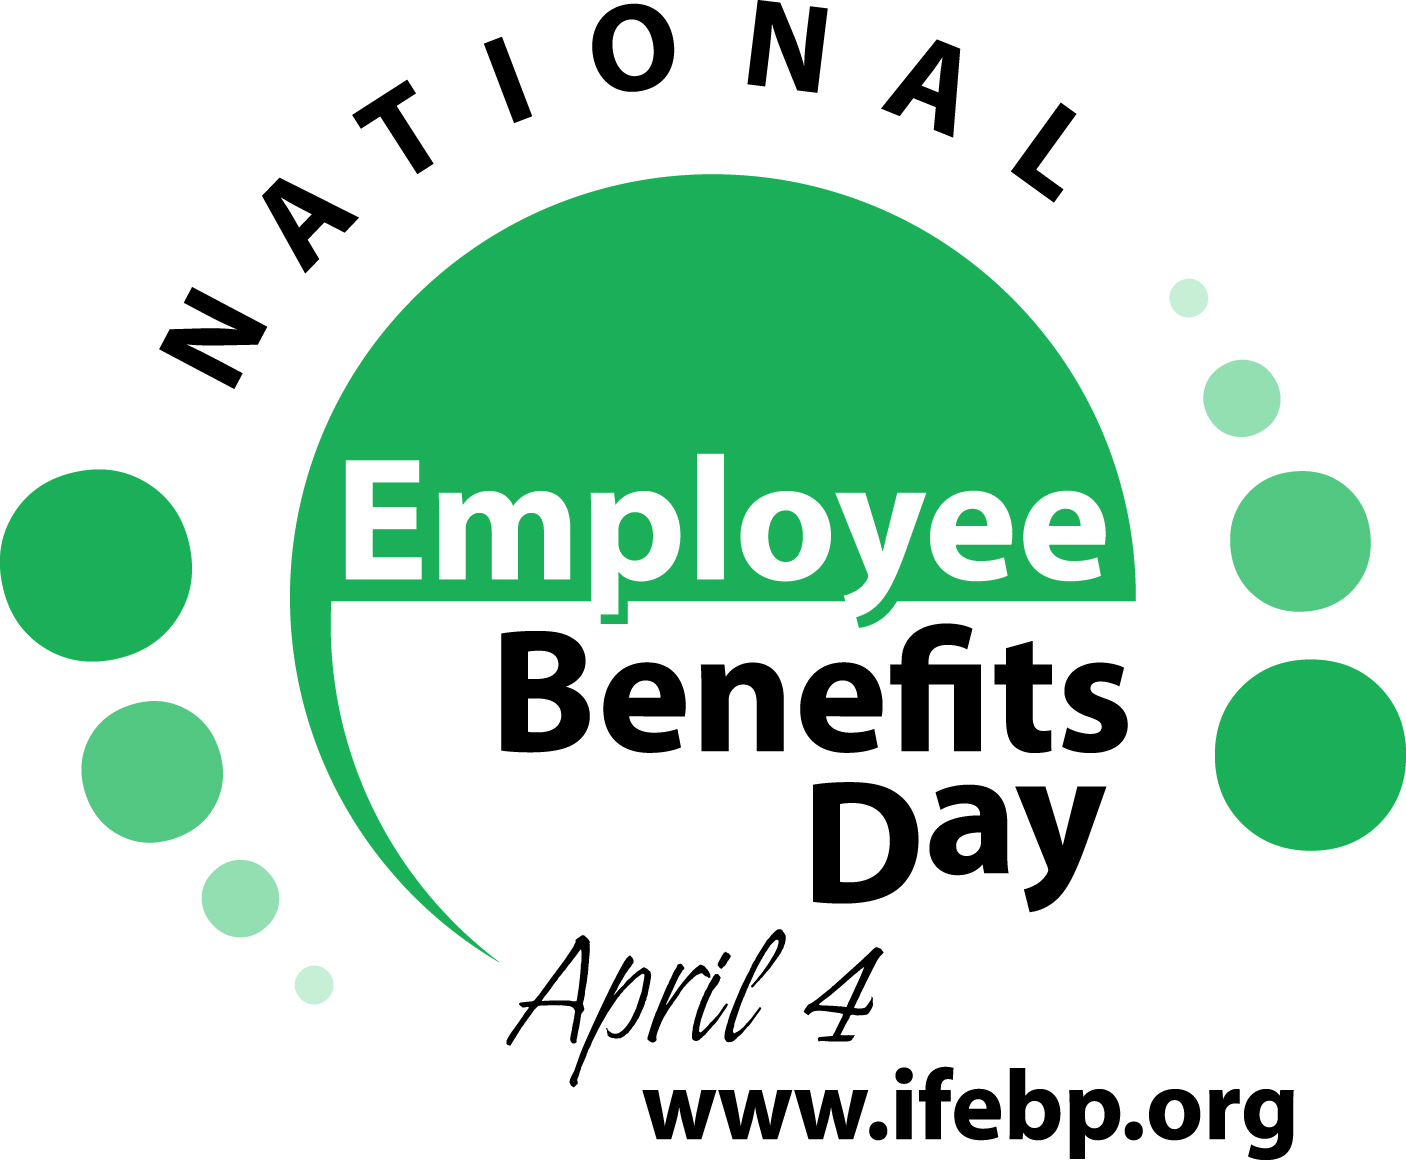 employee benefits pas 19 The empire plan is a unique health insurance plan designed especially for public employees in new york state empire plan benefits include inpatient and outpatient hospital coverage, medical/surgical coverage, centers of excellence for transplants, infertility and cancer, home care services, equipment and supplies, mental health and substance abuse coverage and prescription drug coverage.